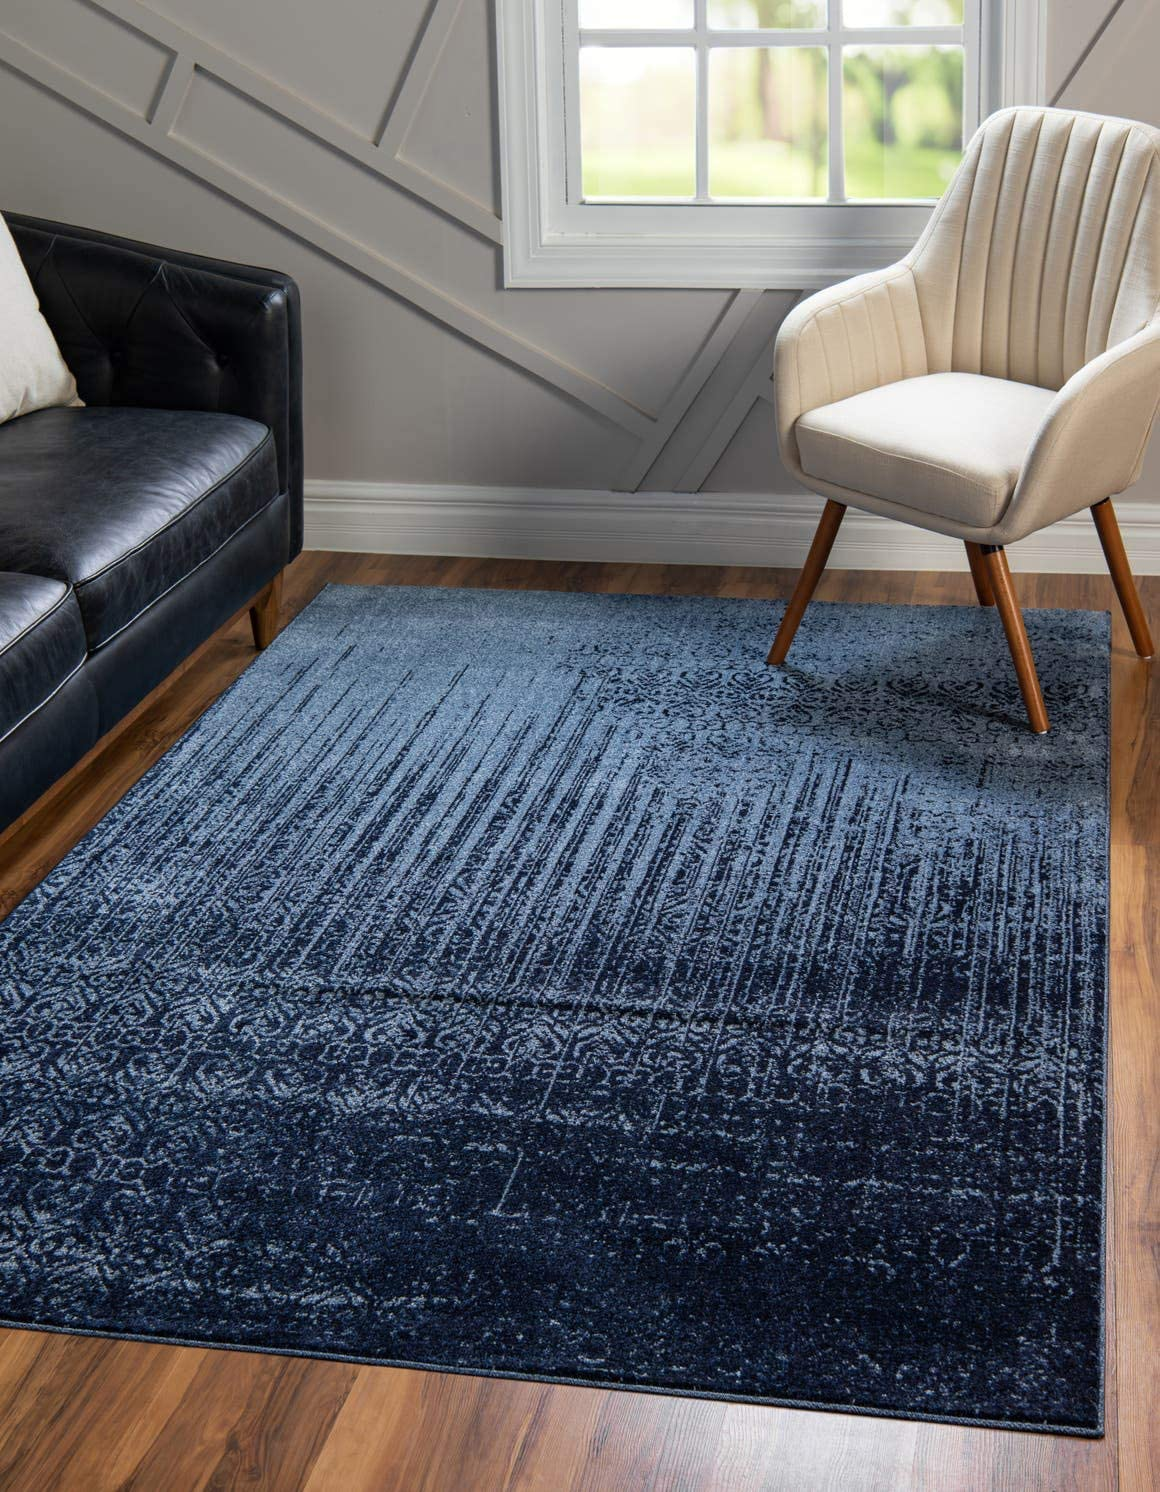 Unique Loom Del Mar Collection Contemporary Transitional Blue Area Rug 2 2 x 3 0